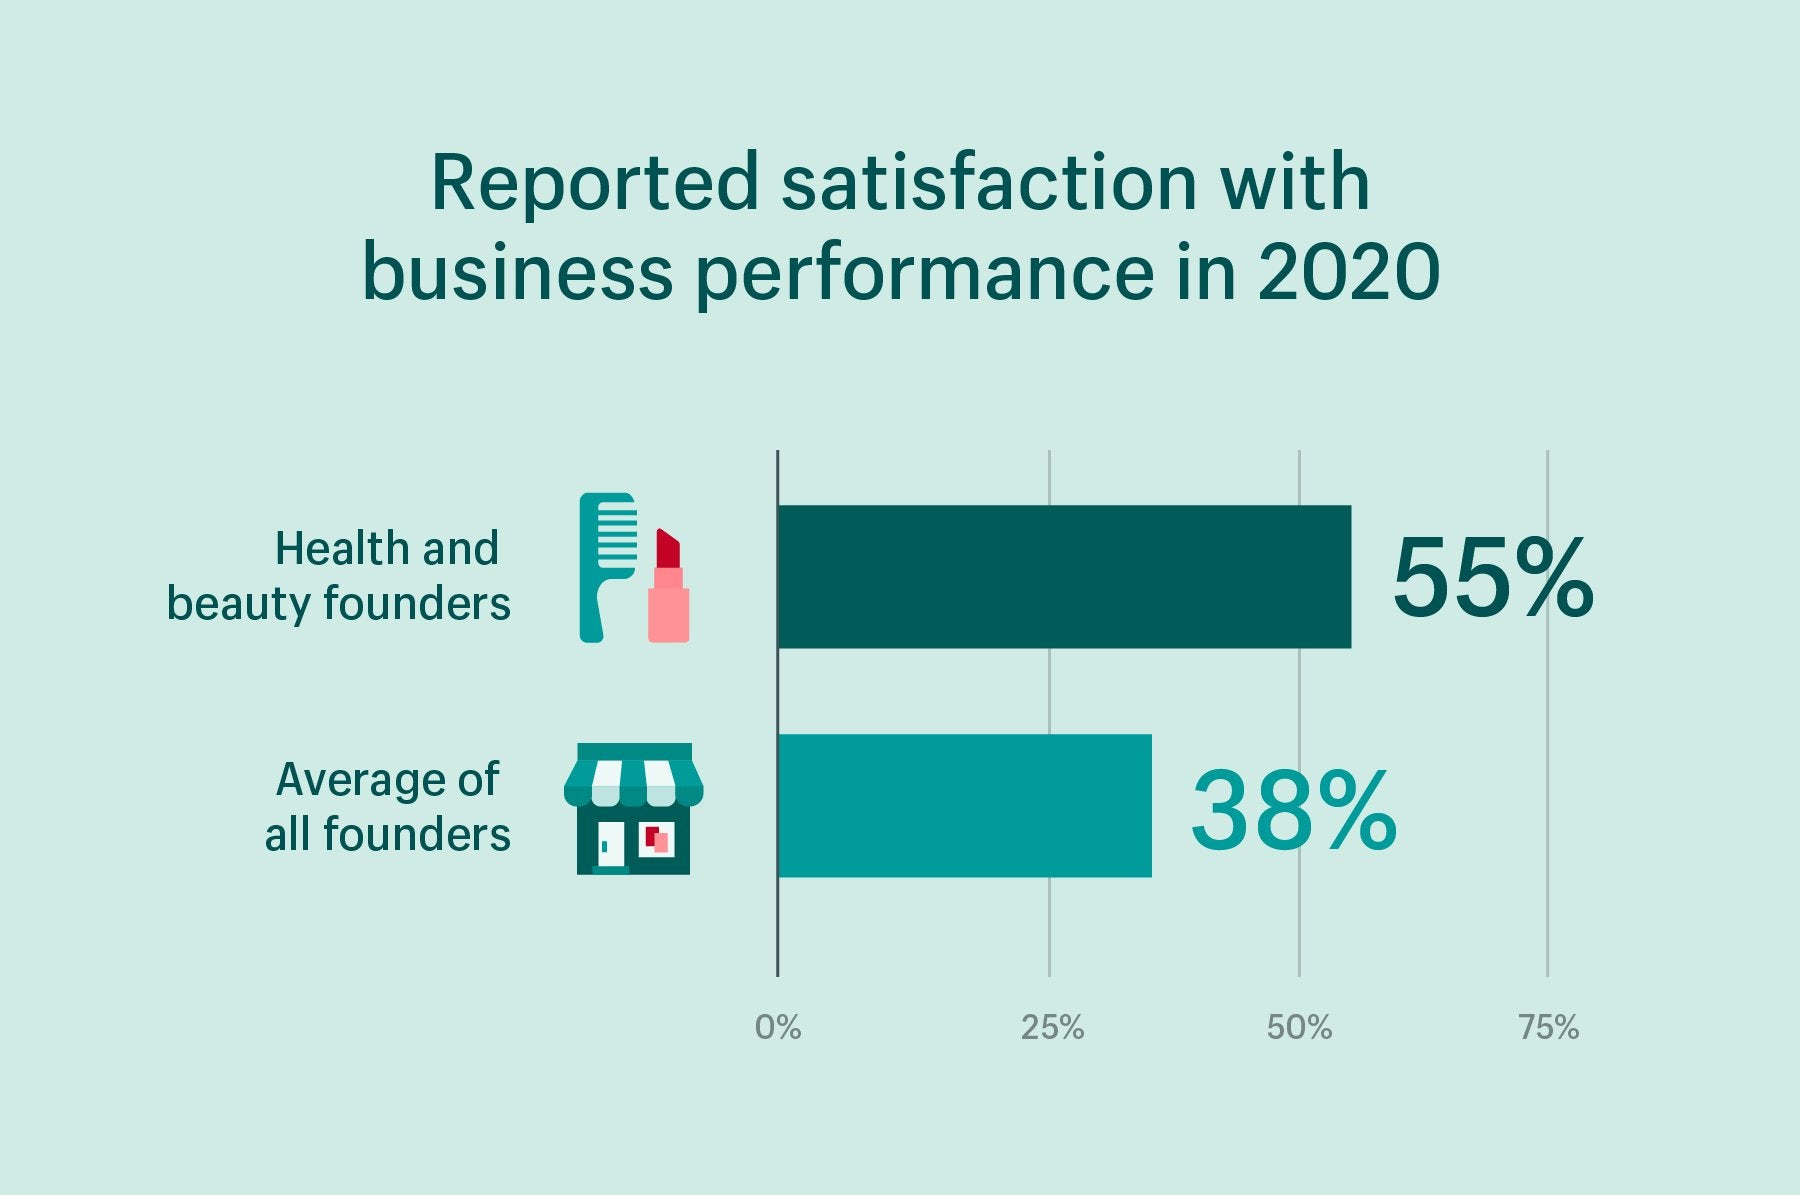 business performance in 2020